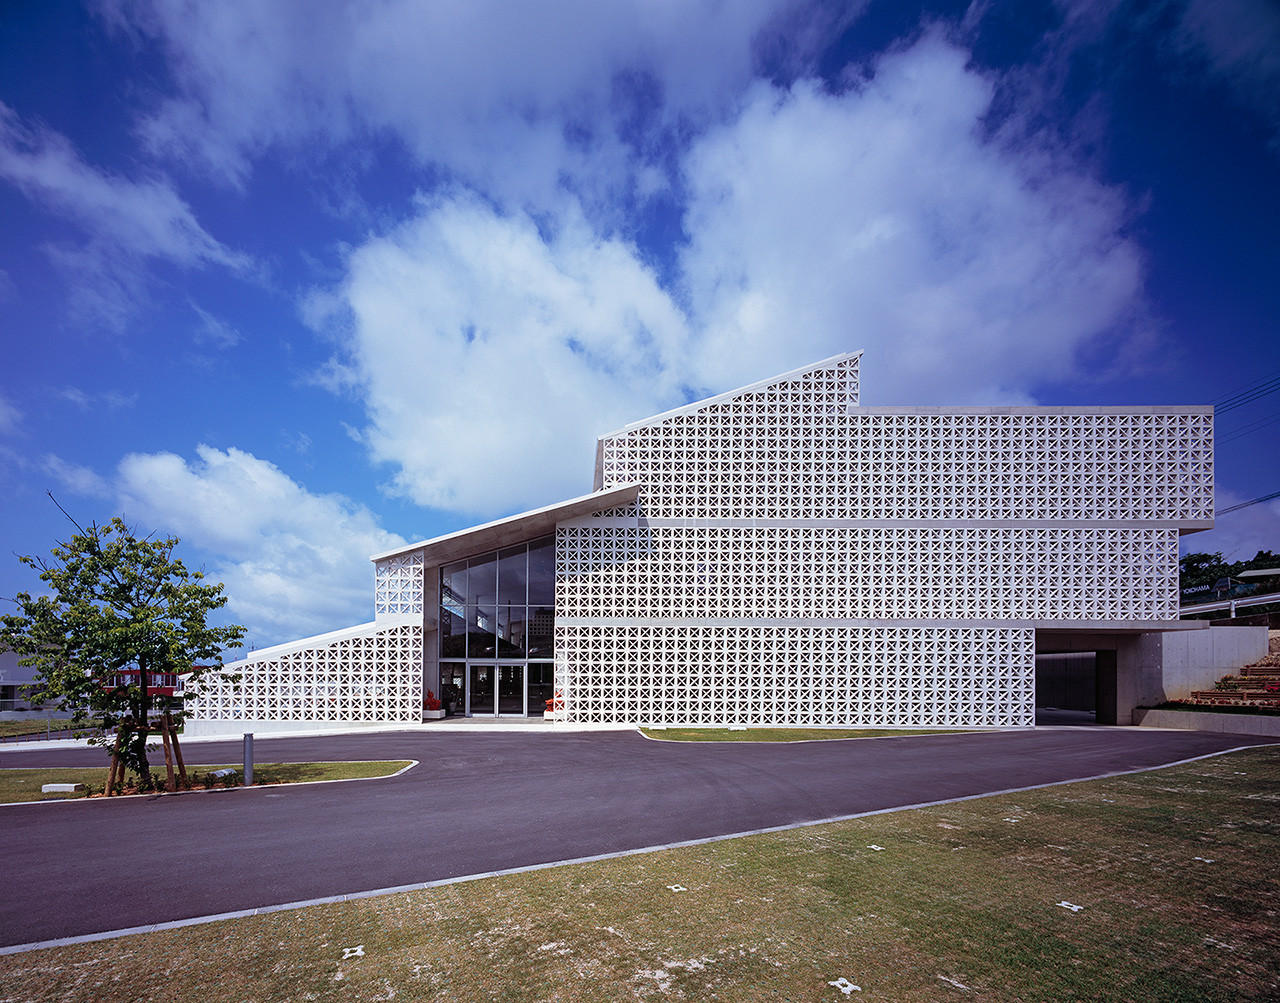 Okinawa Nursing Training Center / IIDA Archiship Studio, © Kenichi Suzuki